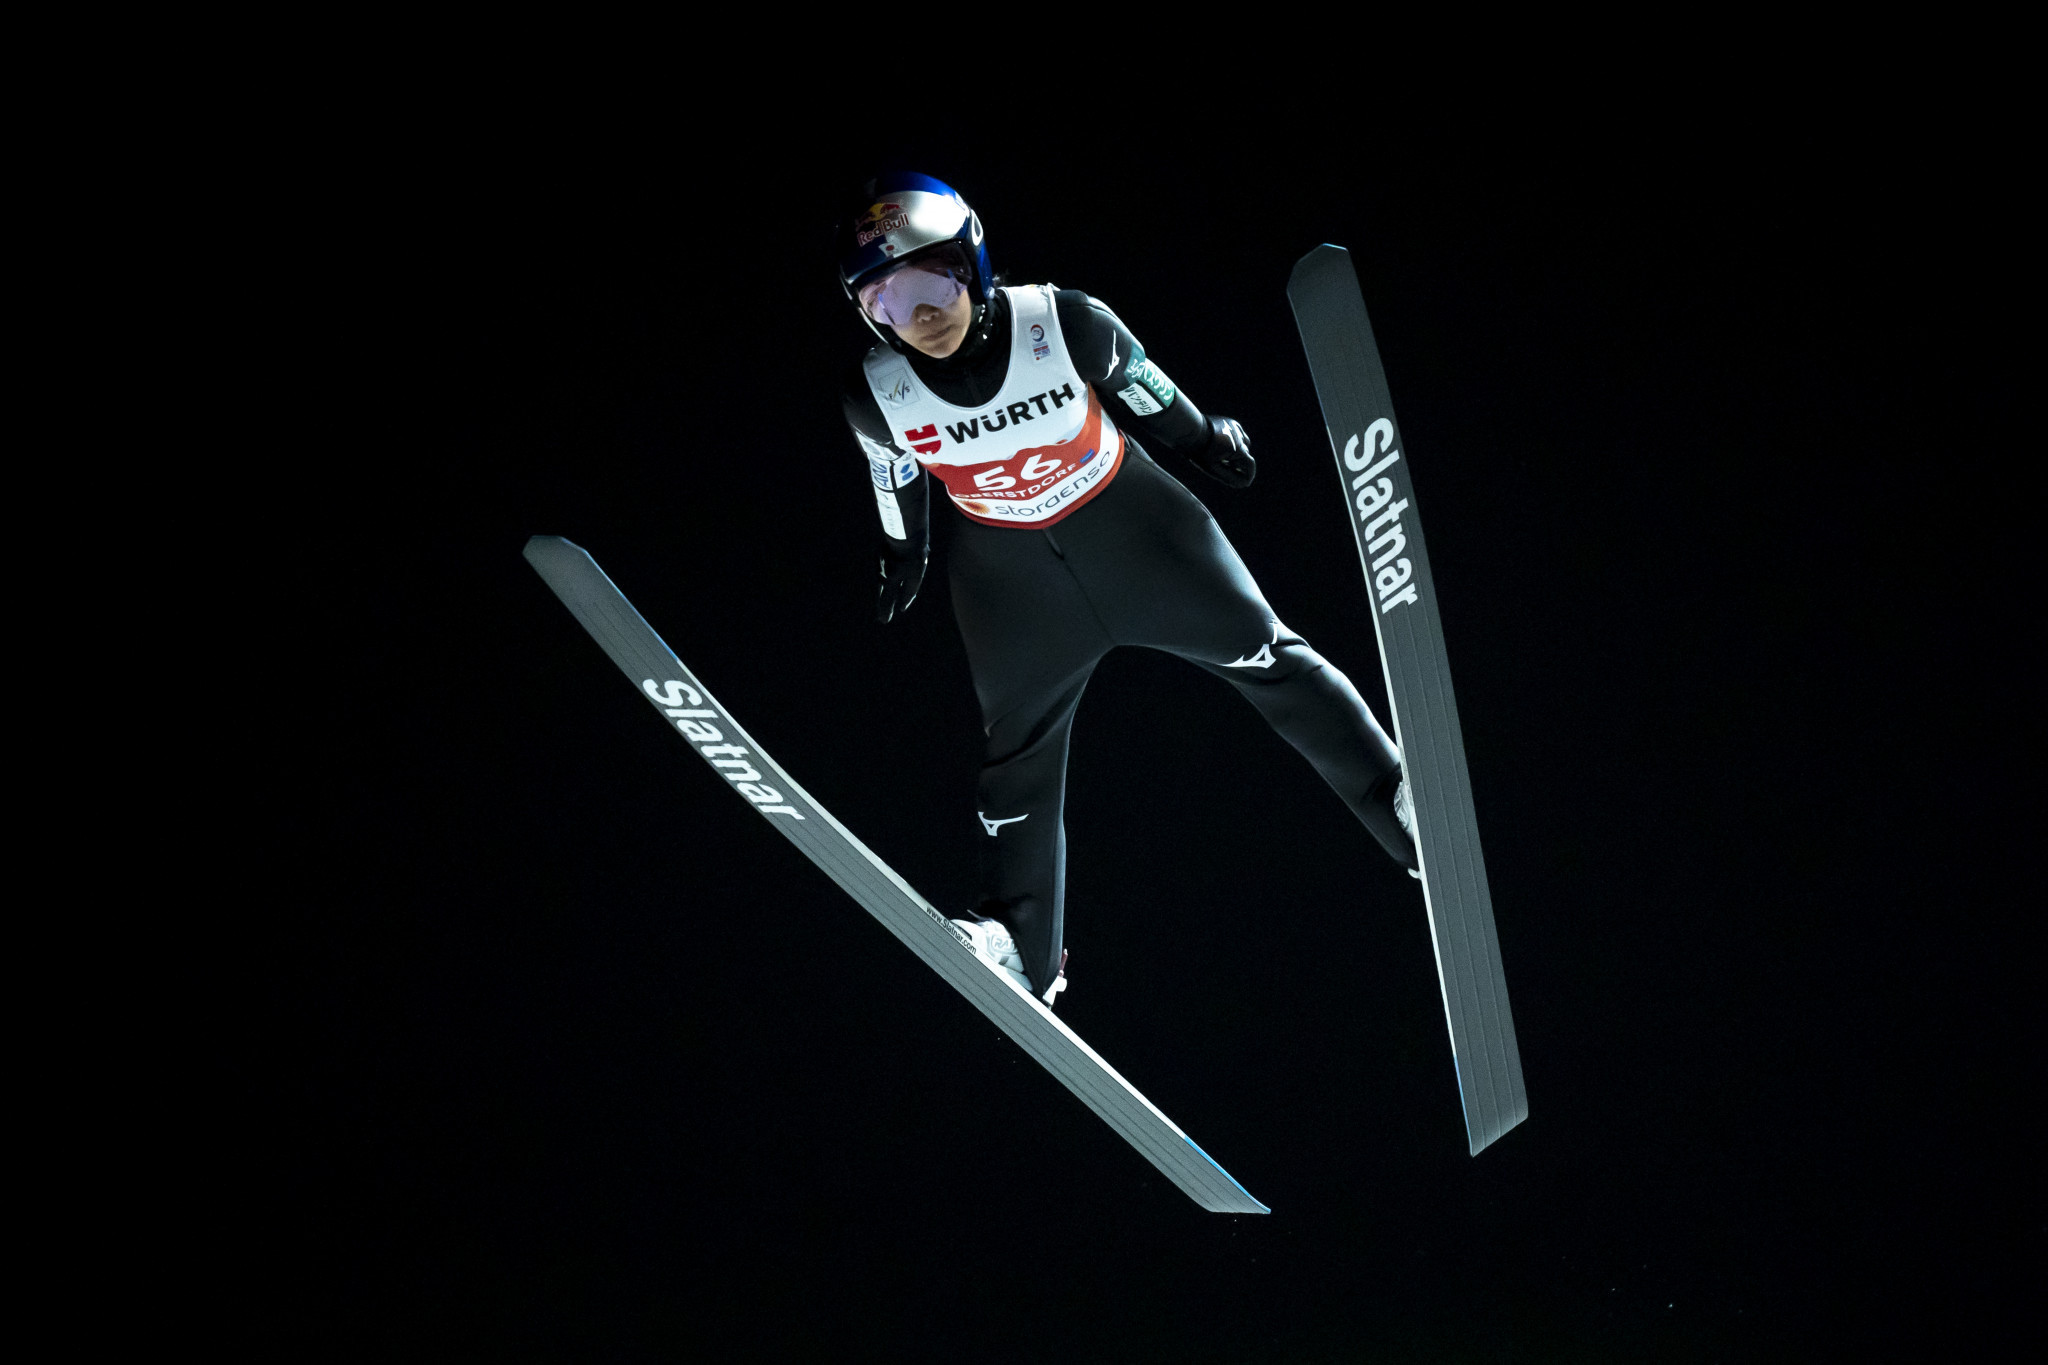 Japan's Sara Takanashi topped normal hill qualification today ©Getty Images